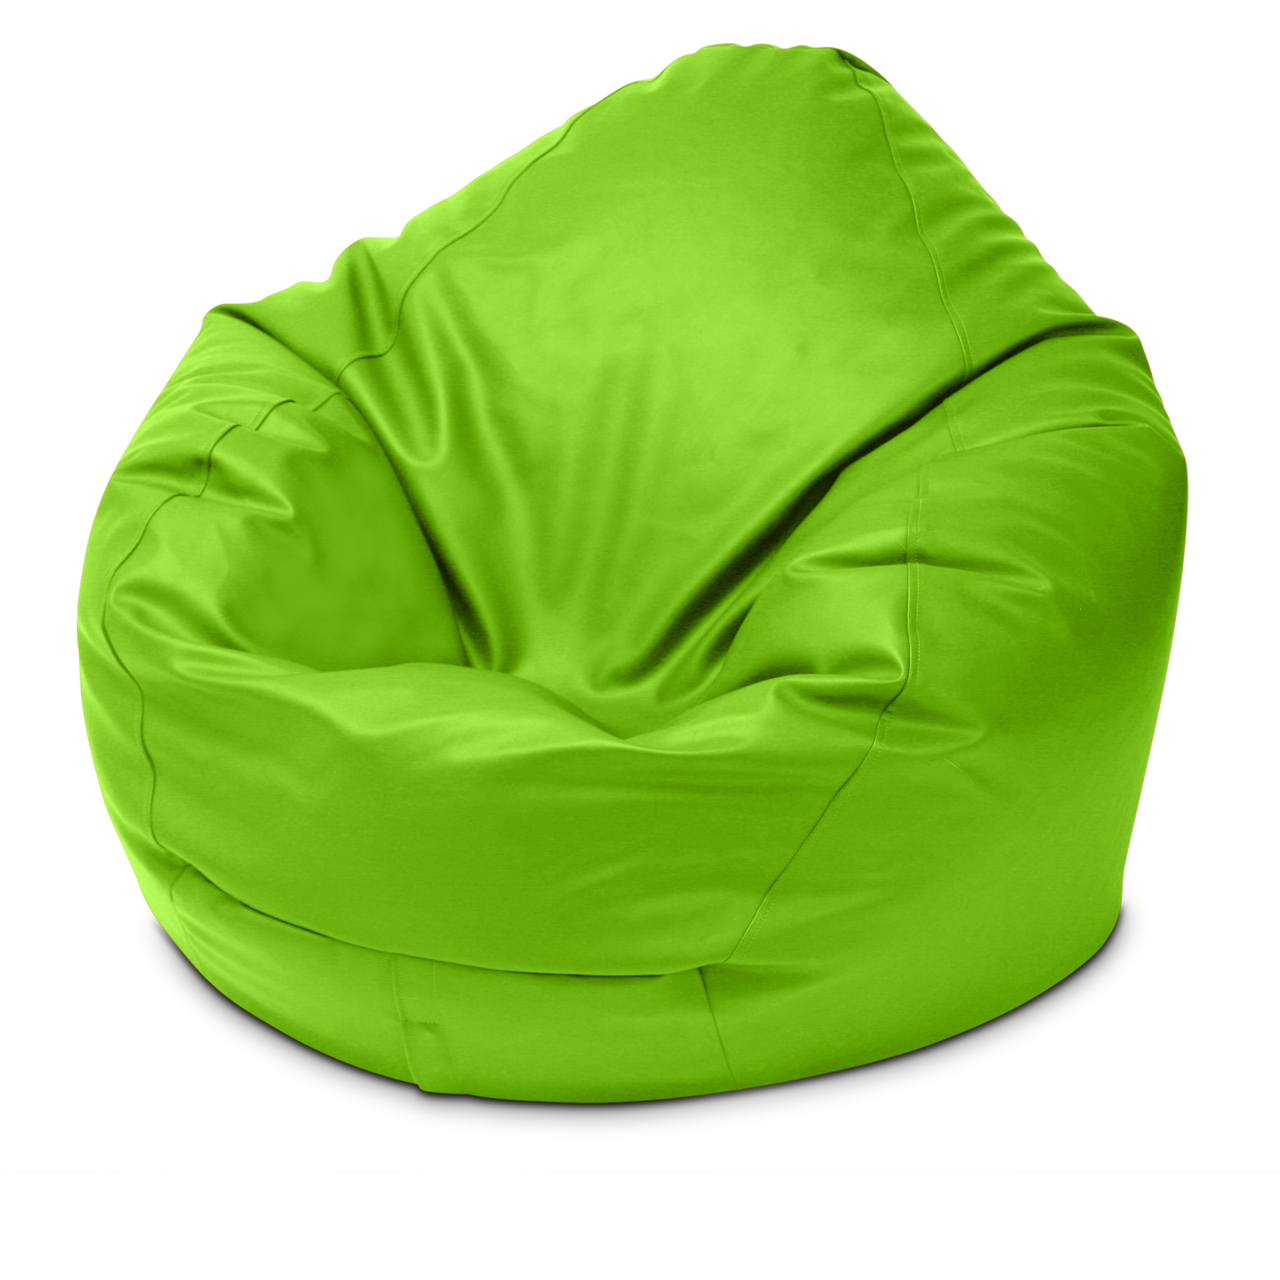 Classic King Size Bean Bag in lime